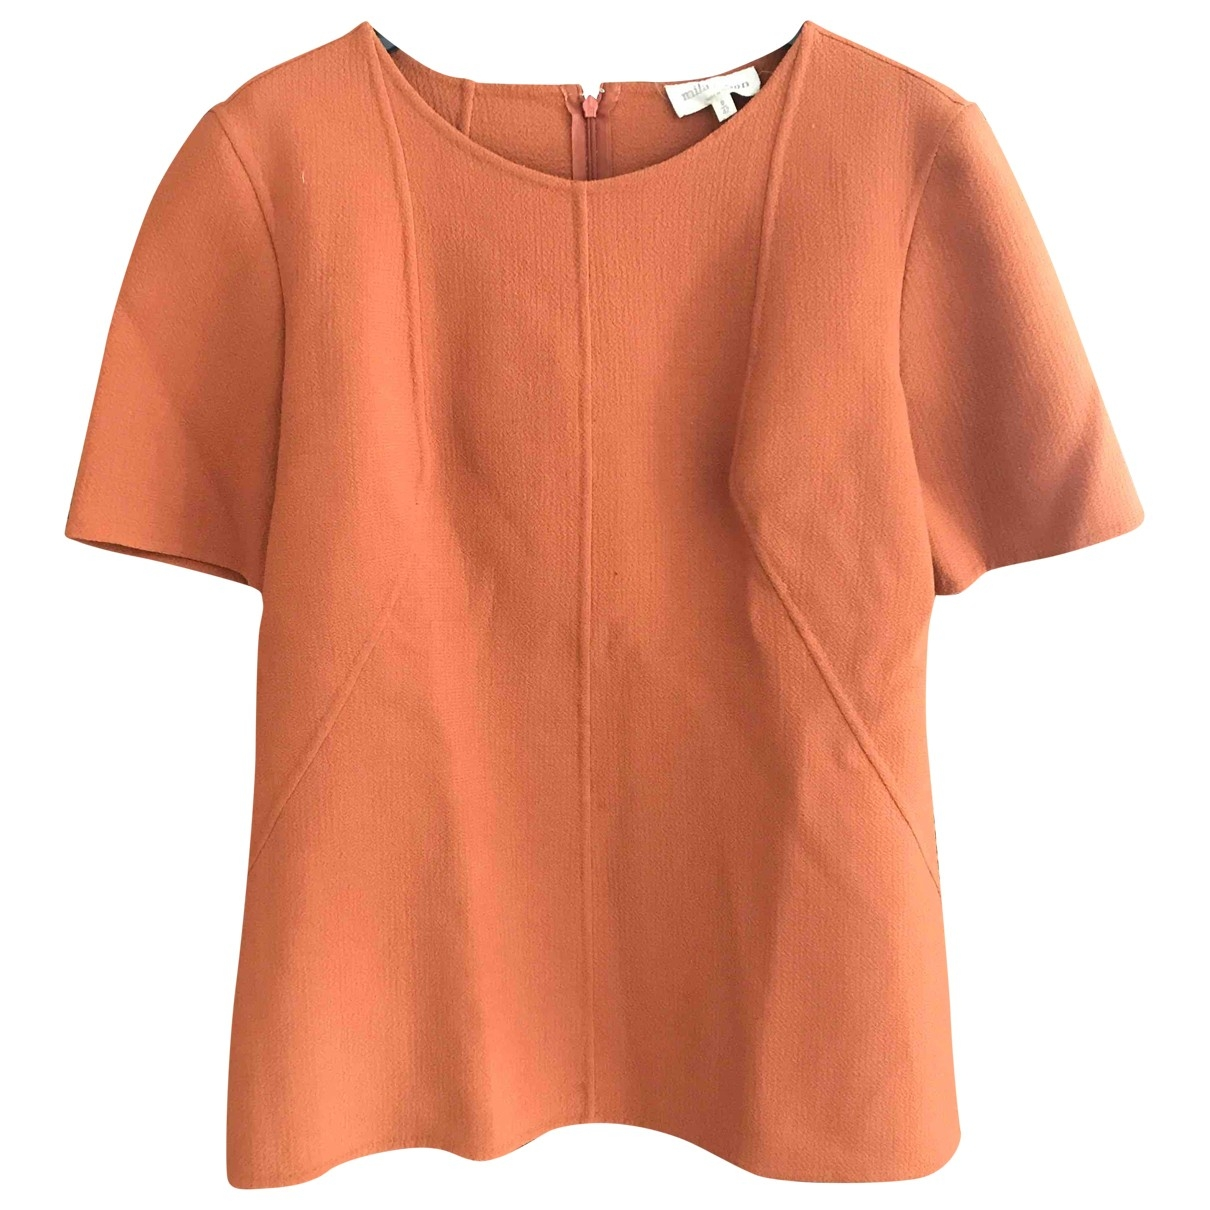 Mila Schön Concept \N Orange Wool  top for Women 42 IT